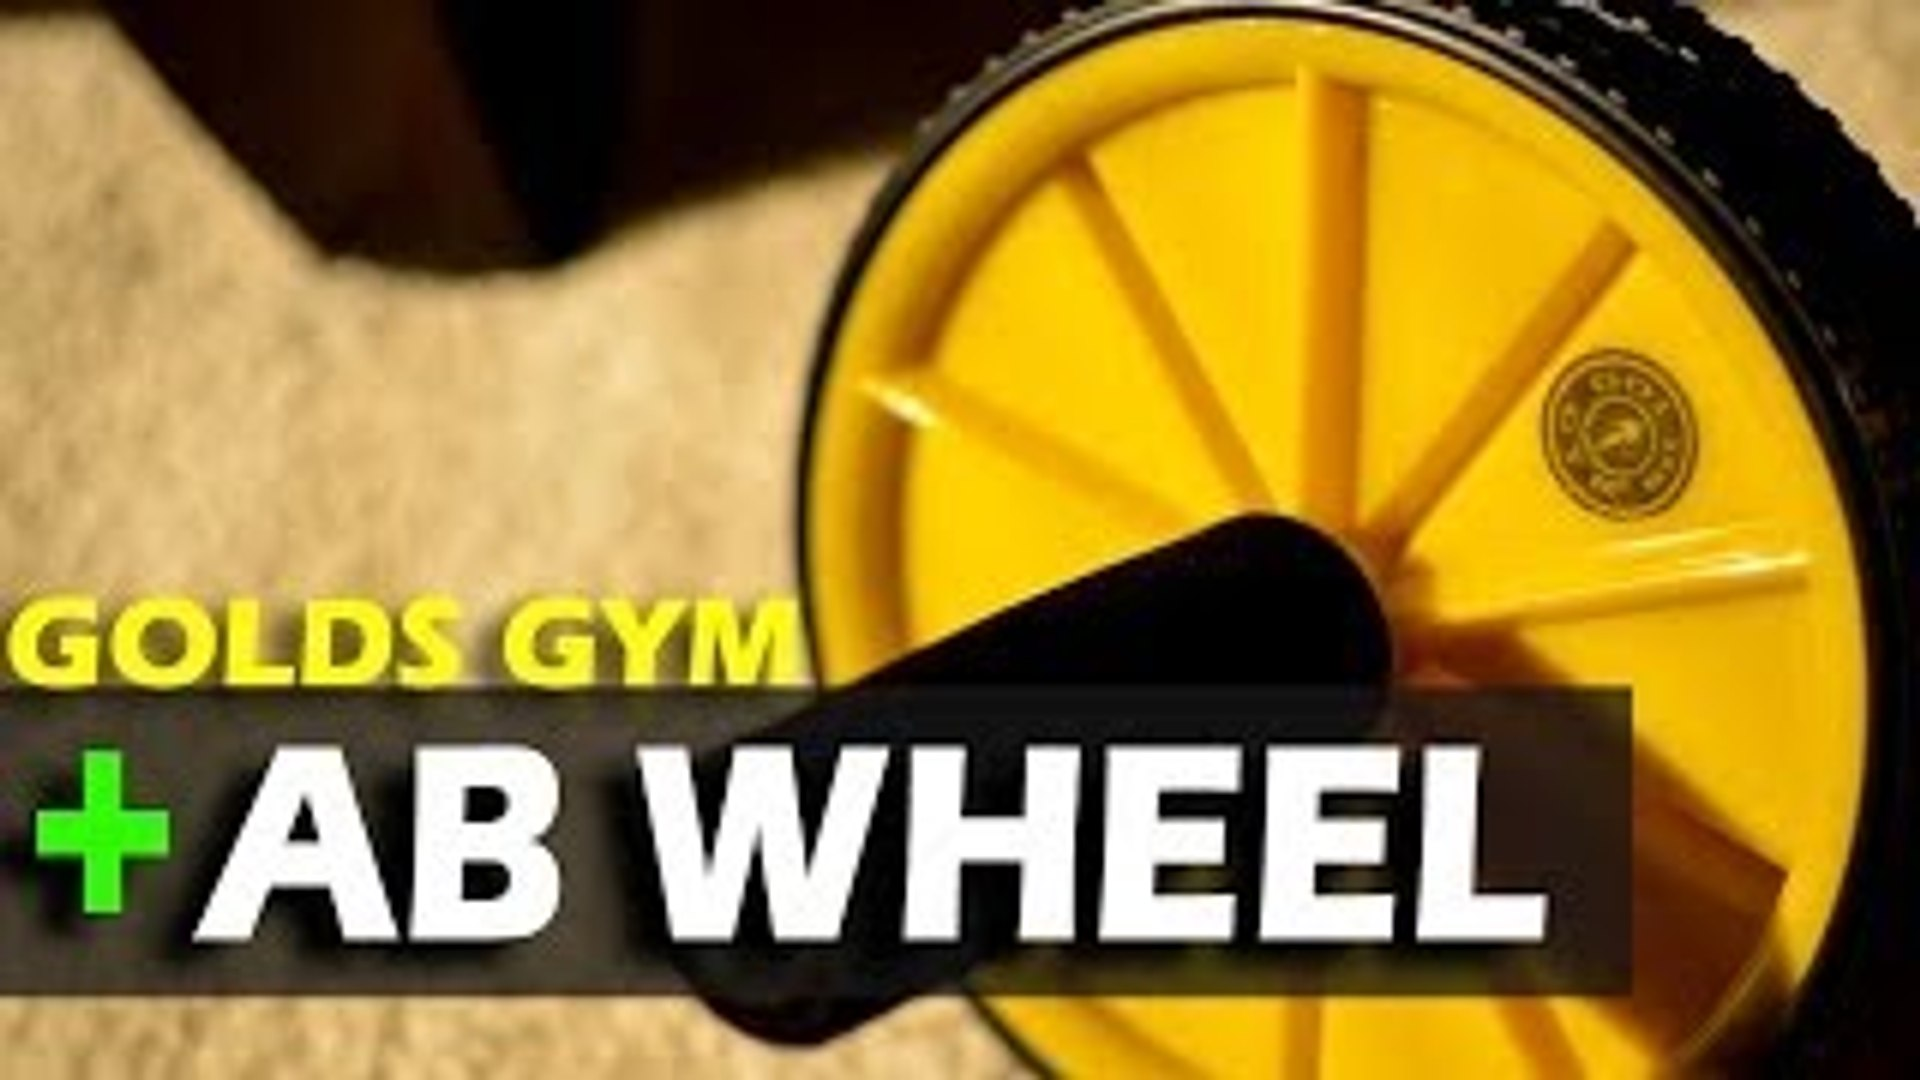 Golds Gym Ab Wheel - REVIEW & PLANK CHALLENGE